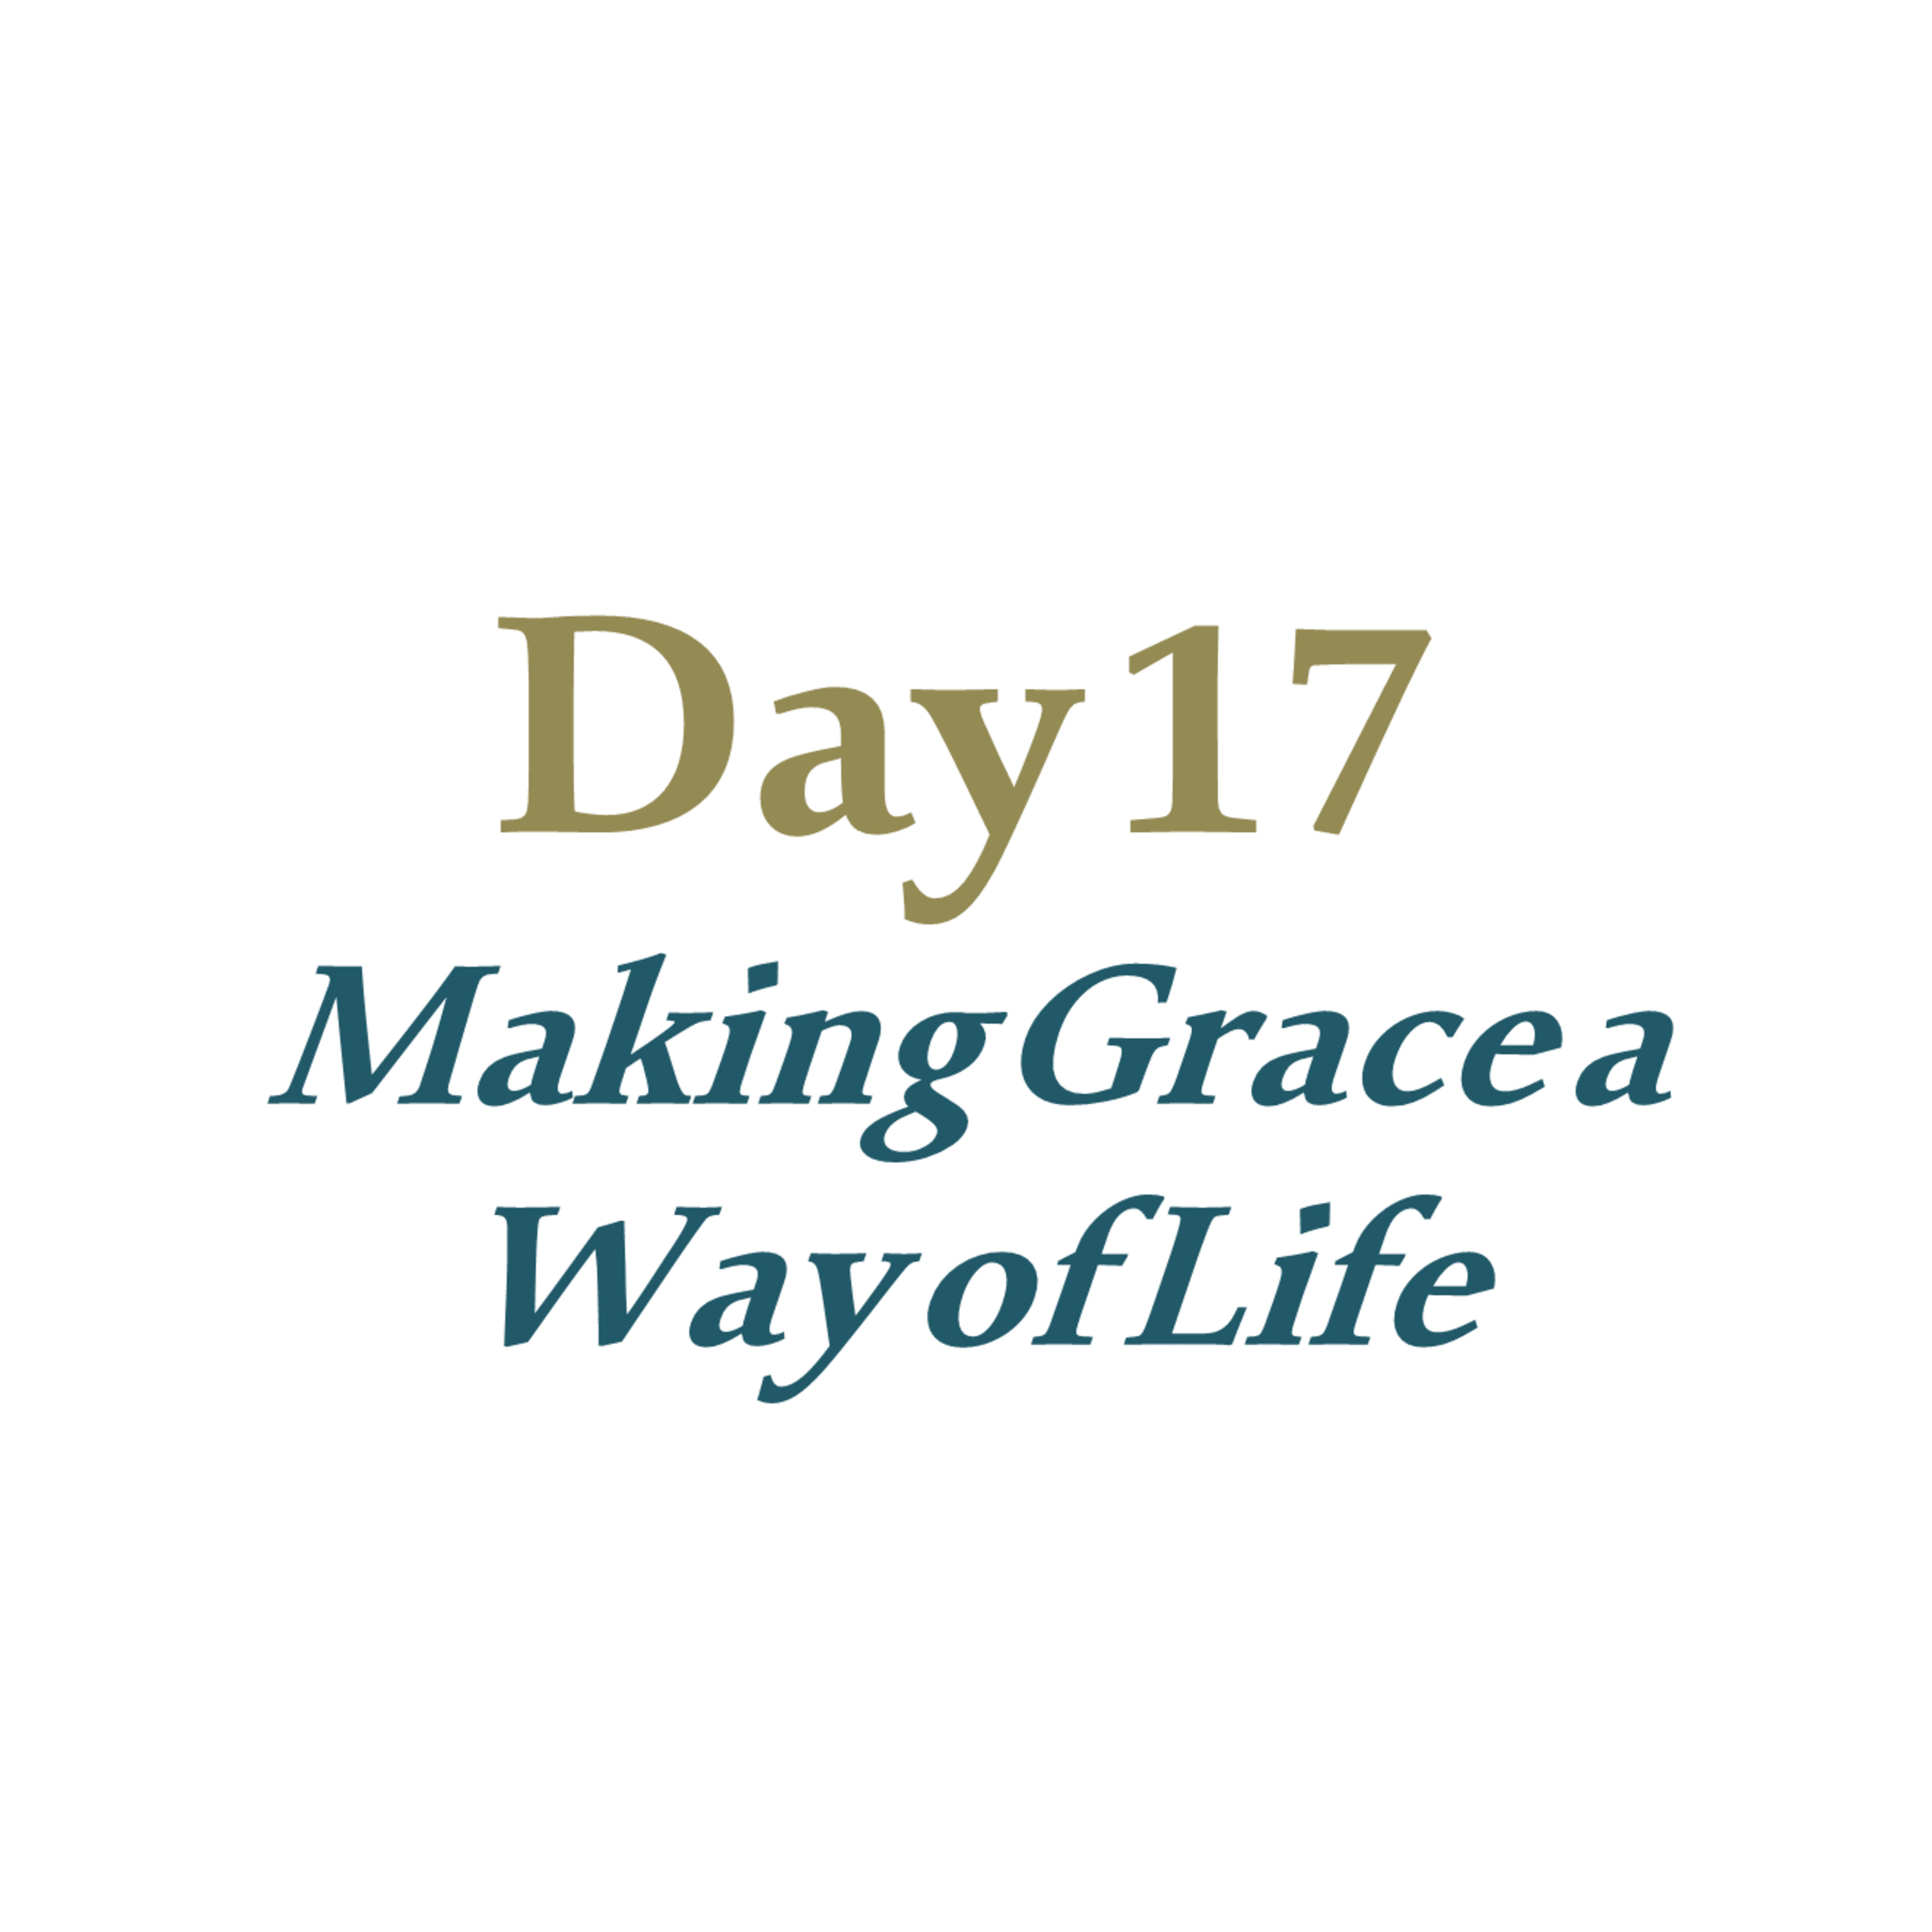 Day 17 - Making Grace a Way of Life